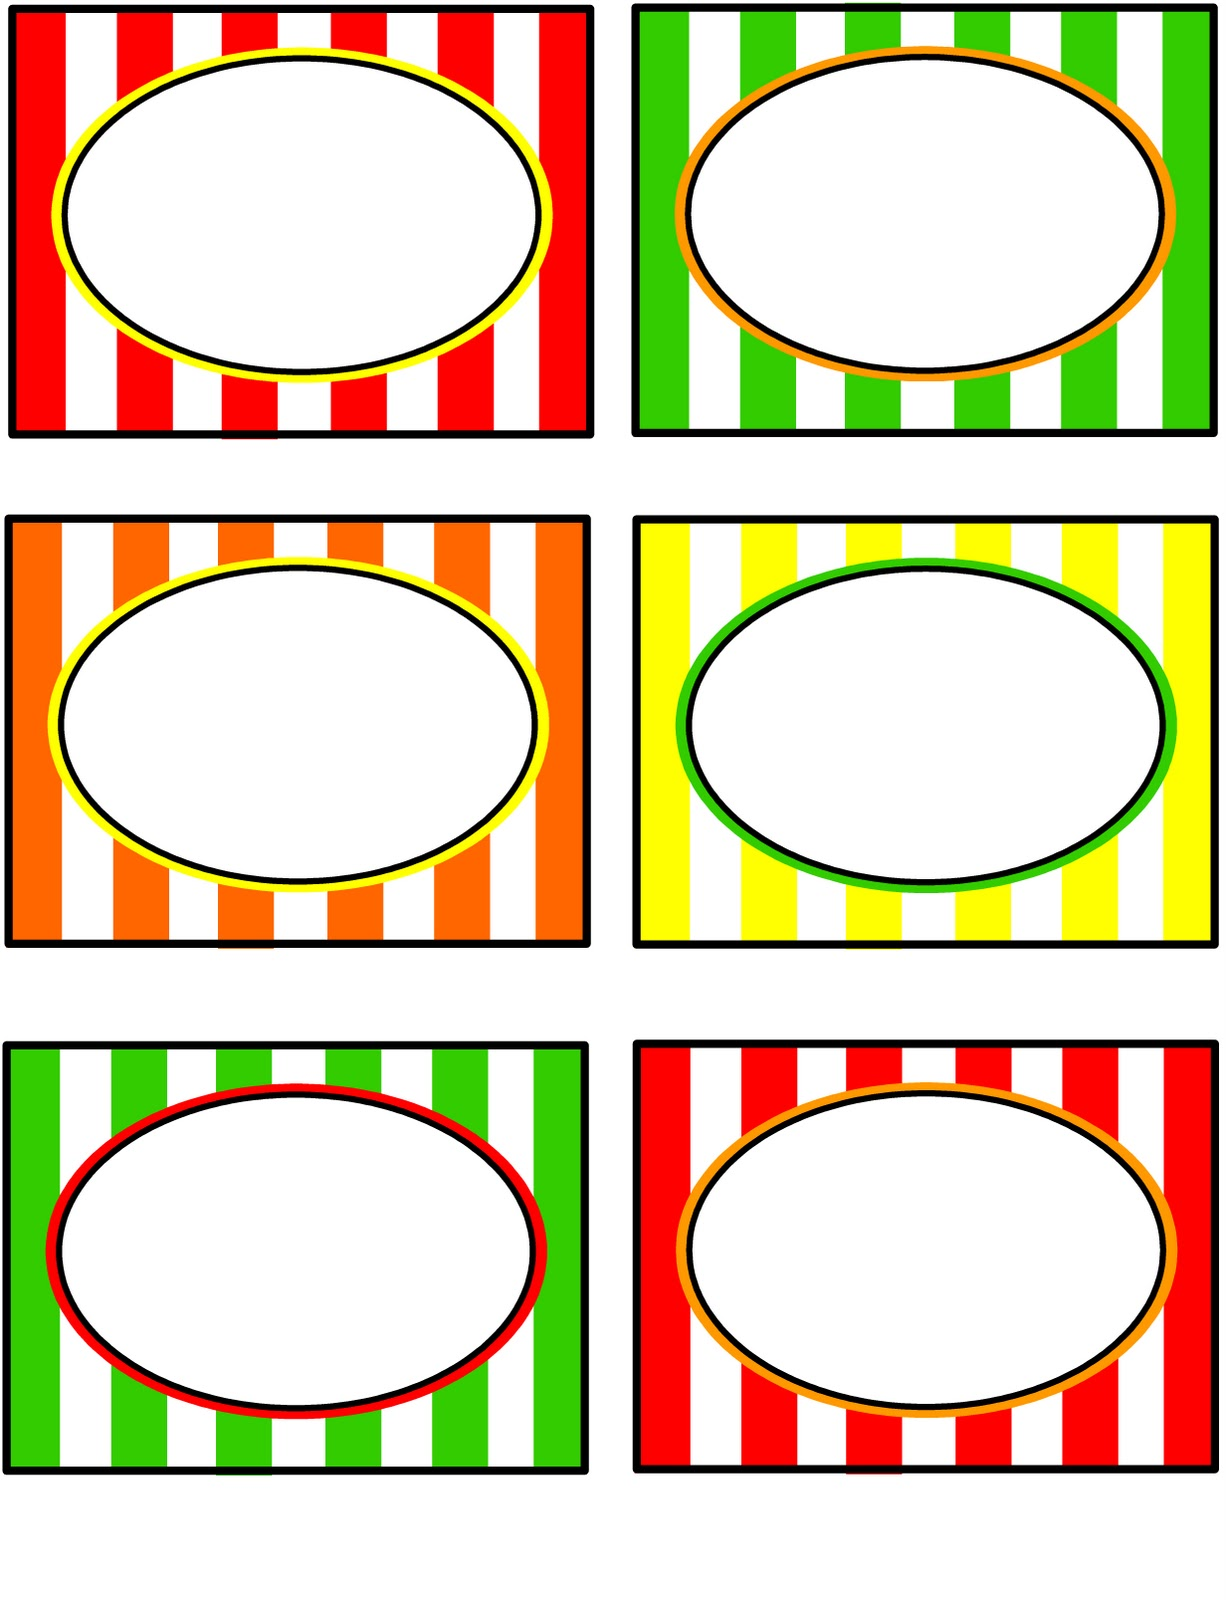 Decorate a christmas tree coloring page - Free Printable Popcorn Label Templates Search Results